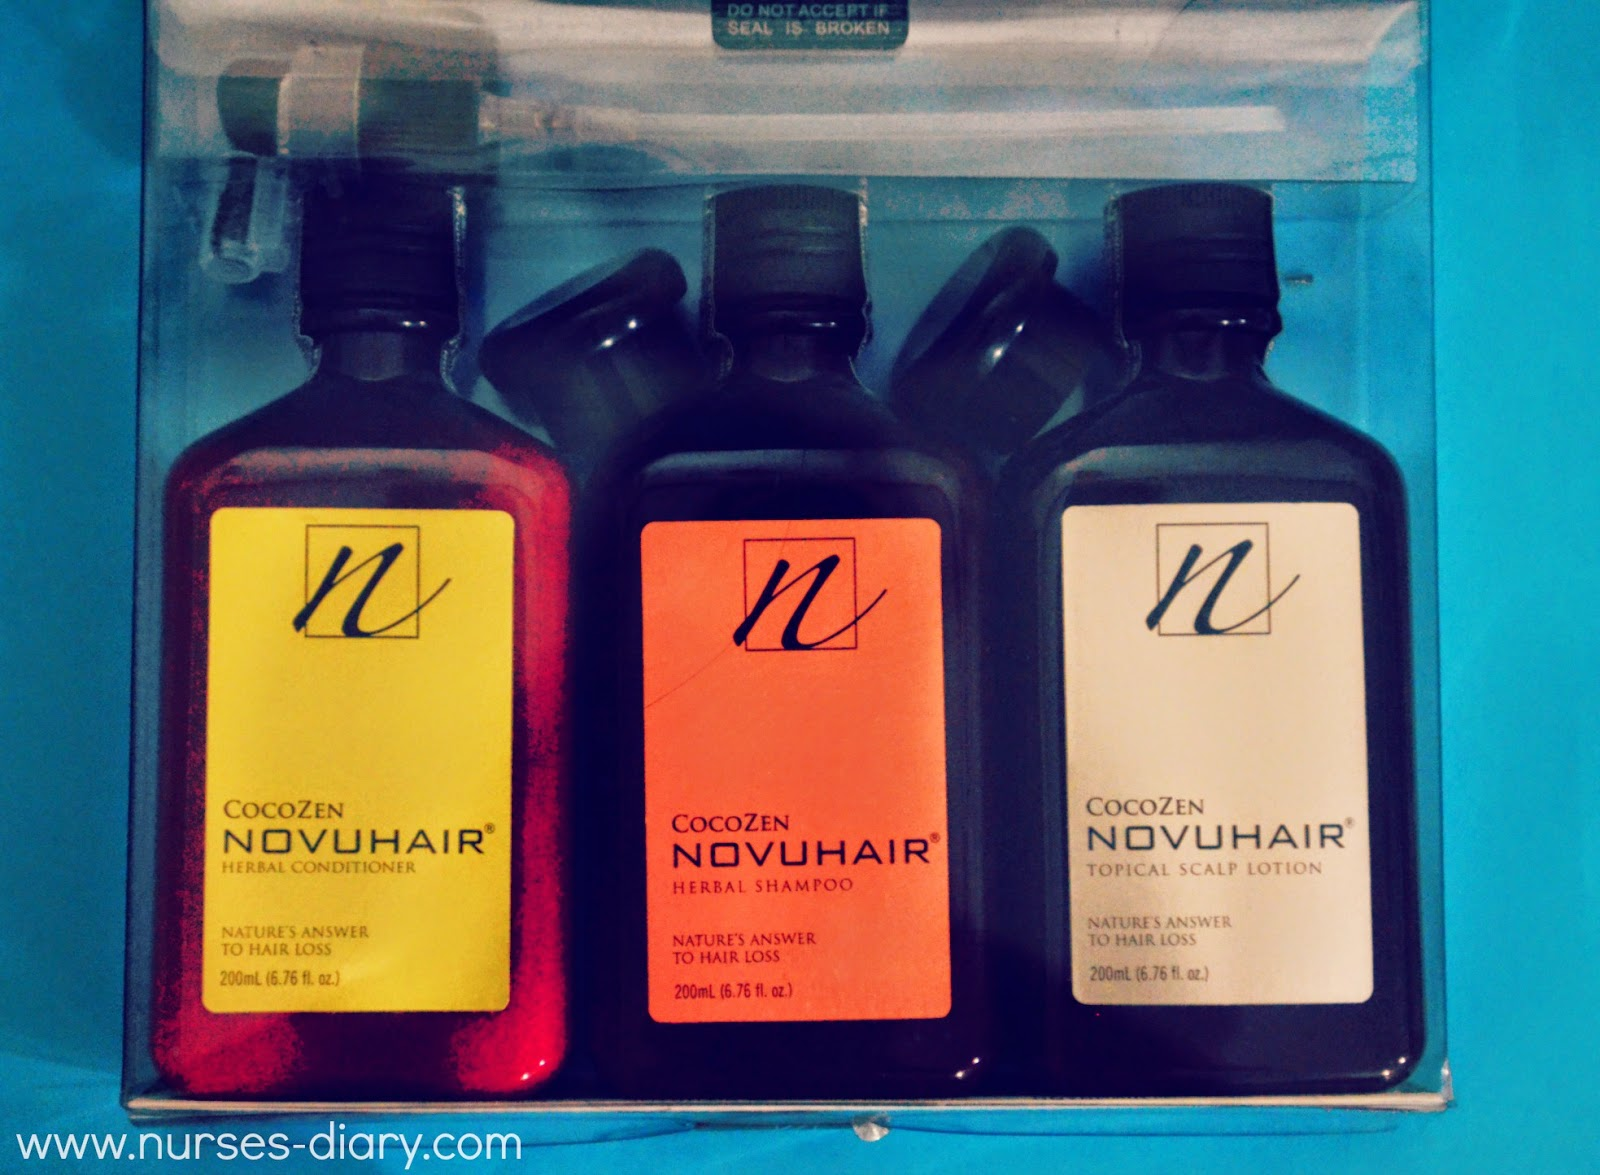 CocoZen Novuhair ; Natural Solution to Hair and Scalp Problems